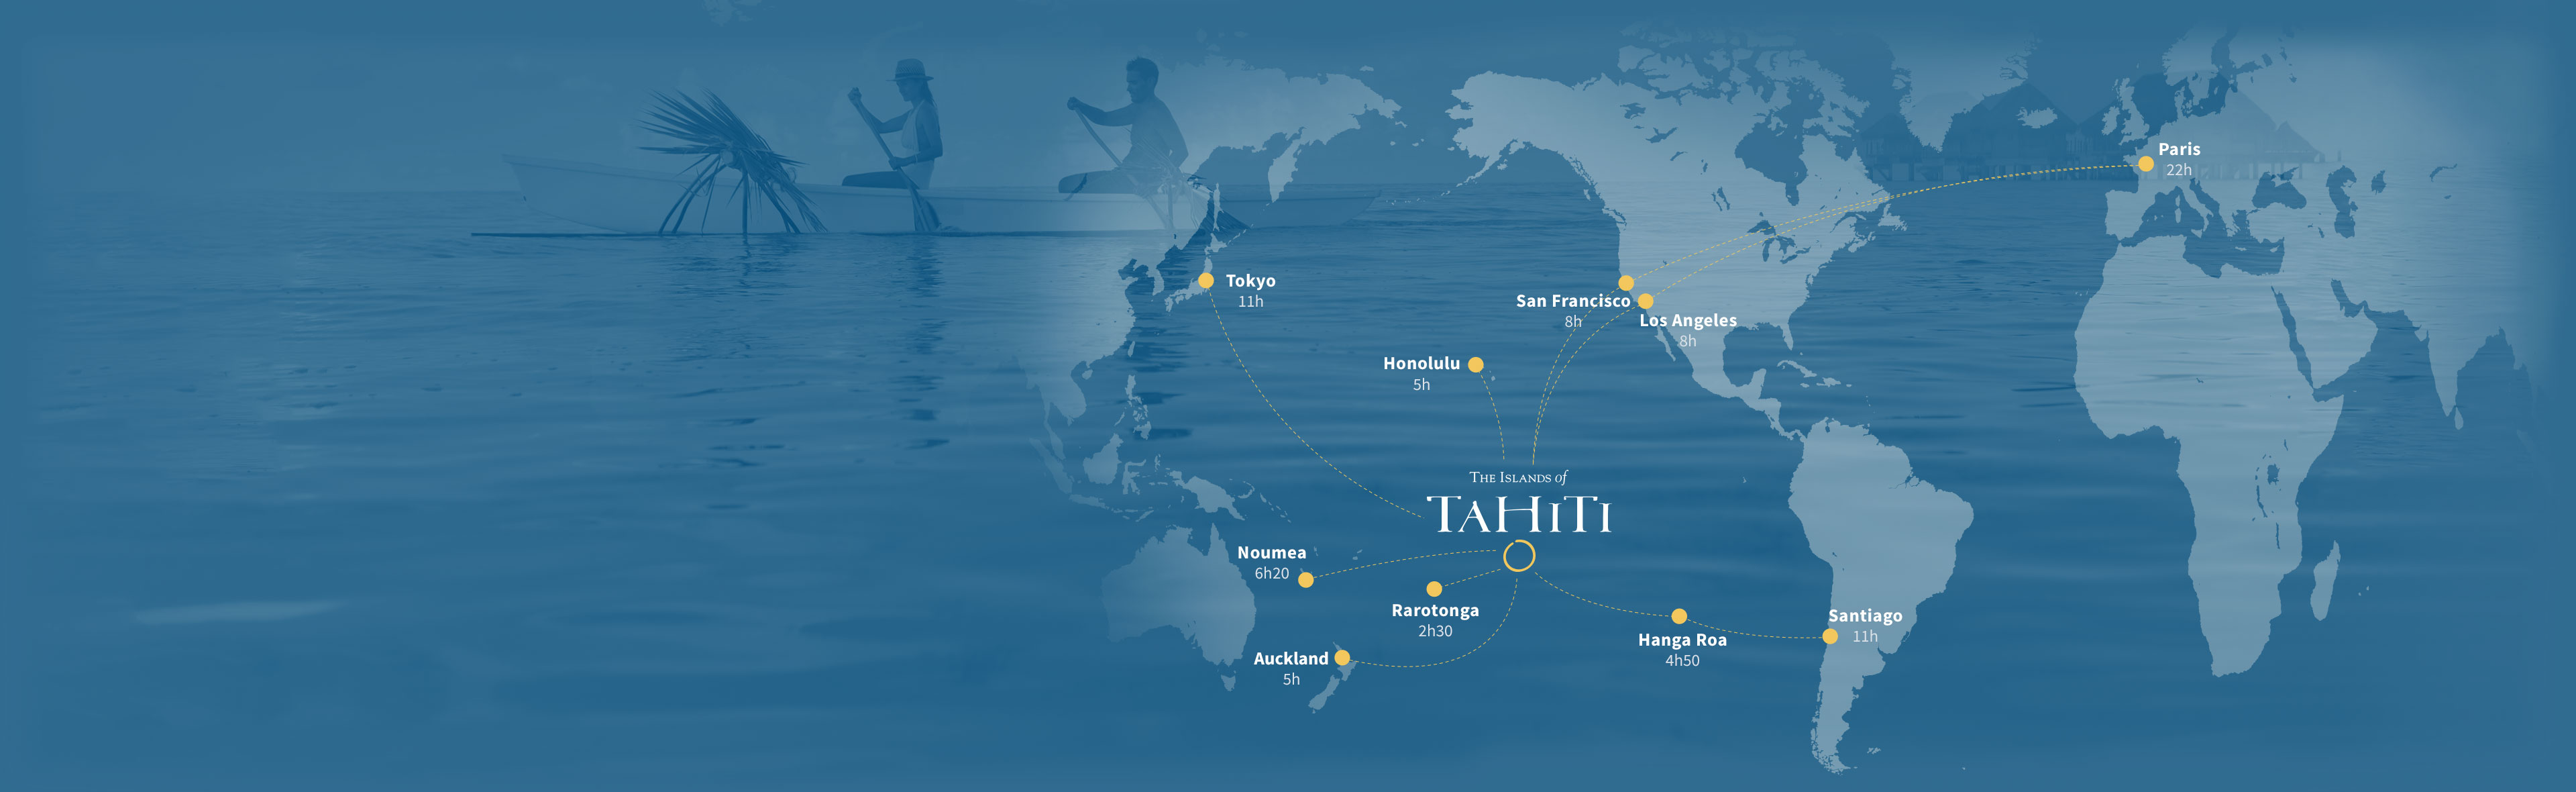 Tahiti Tourisme | Bora Bora, Tahiti, Moorea & Tahitian ... on capital of tahiti, best places in tahiti, national flower of tahiti, physical map of tahiti, waterfalls maps of tahiti, 2d map of tahiti, beaches of tahiti, linguistic map of tahiti, map surrounding islands of tahiti, currency of tahiti, road map of tahiti, map of papeete tahiti, printable map of tahiti, map of climate in tahiti, global map of tahiti,